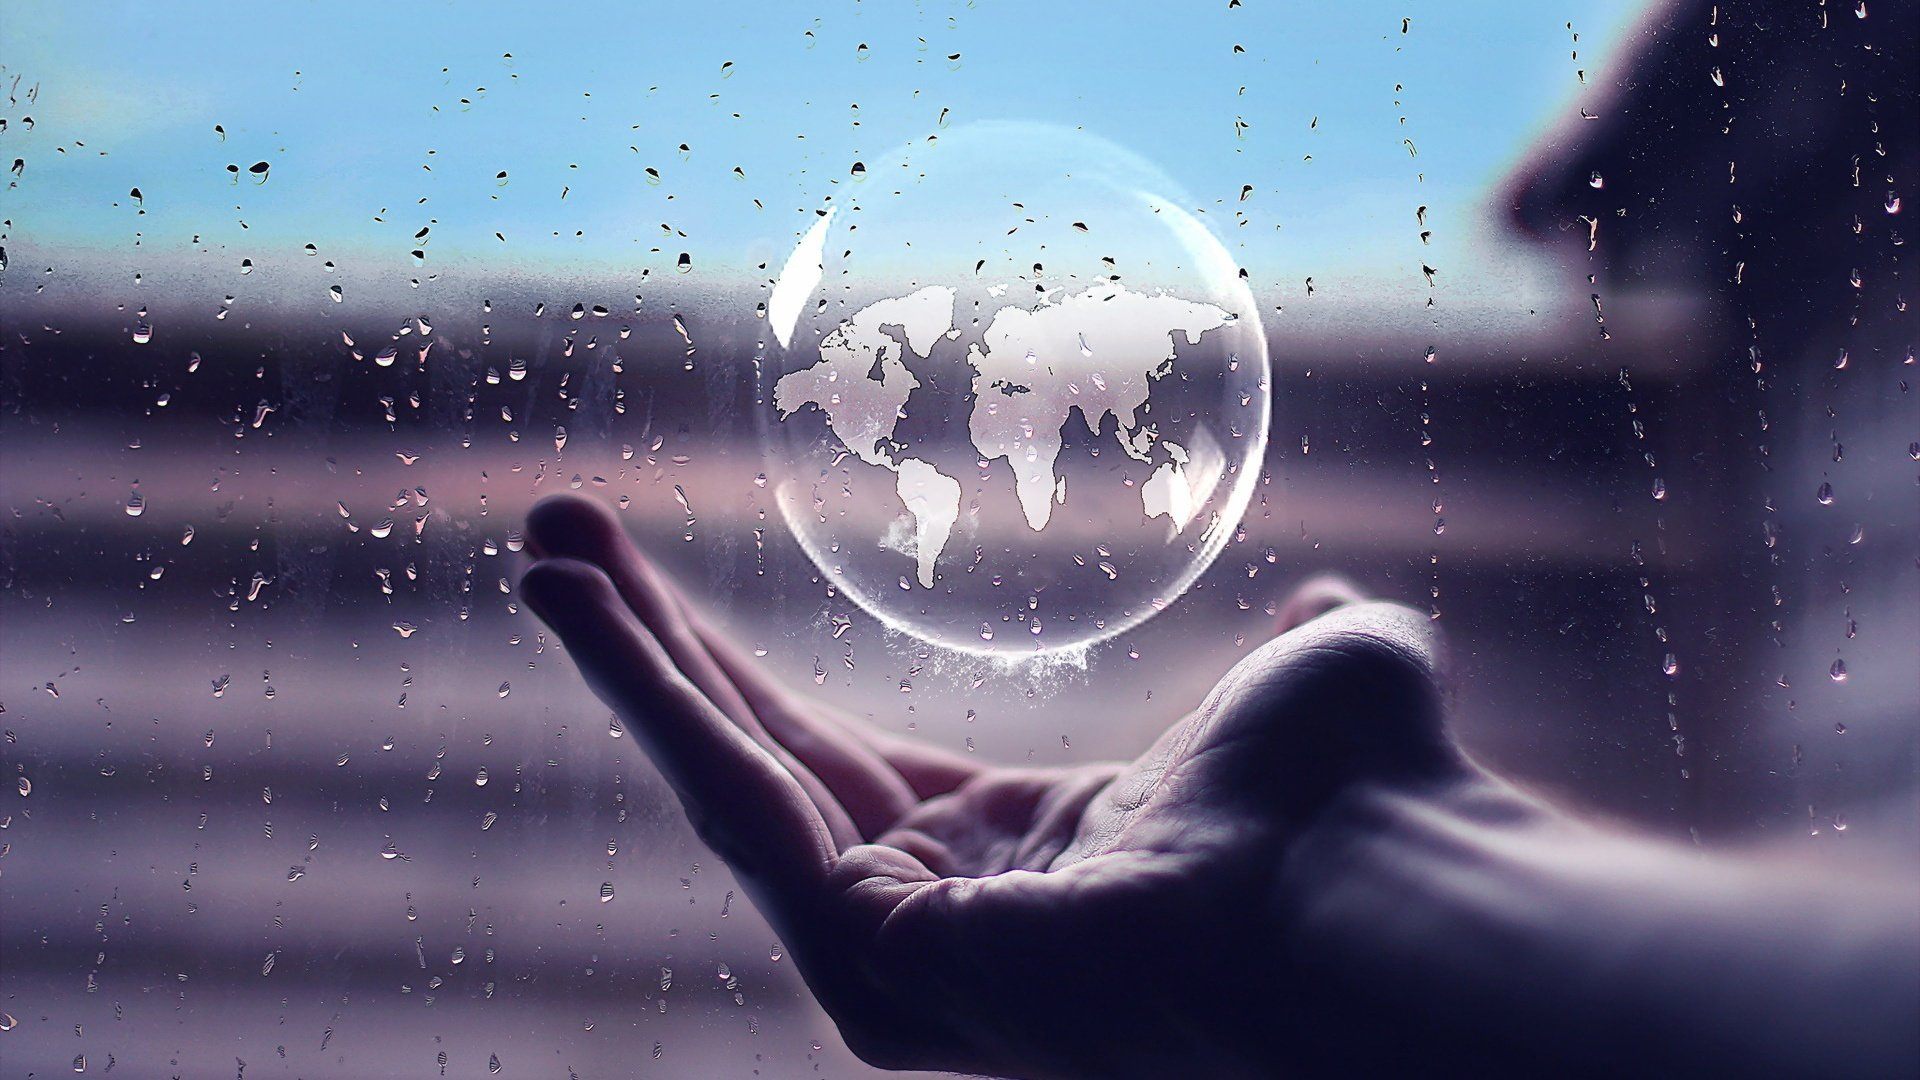 HANDS___world_sphere_rain_transparencse_1920x1080